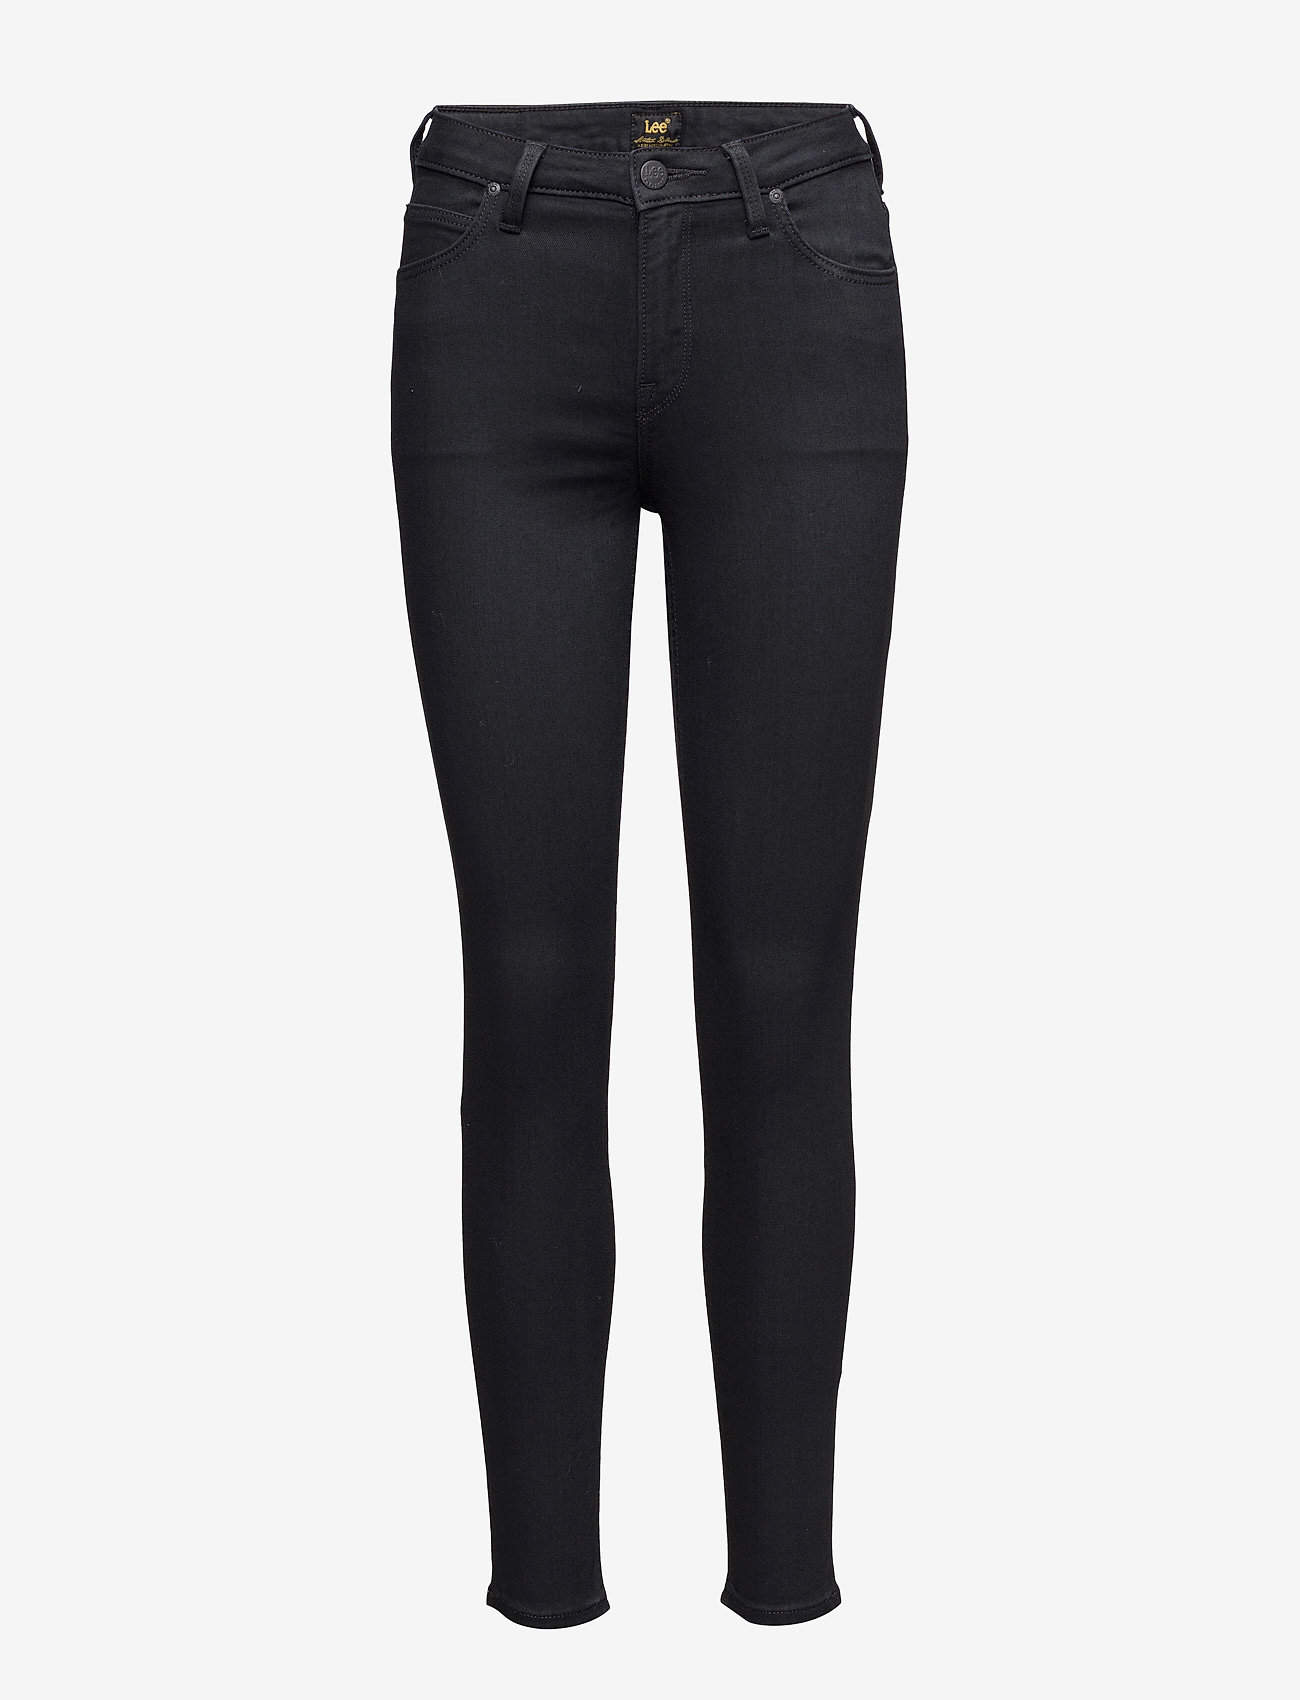 Lee Jeans - SCARLETT HIGH - slim jeans - black rinse - 1